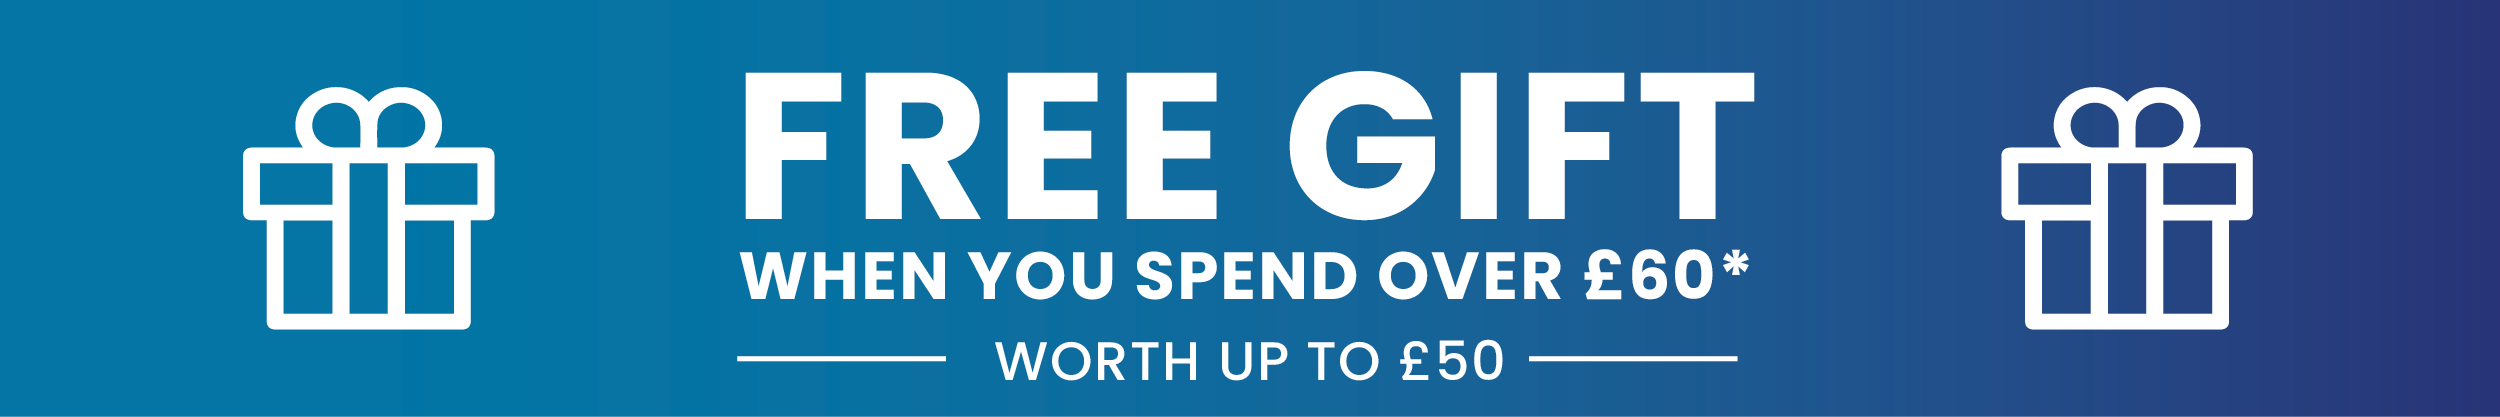 Free Gift - Orders over £60